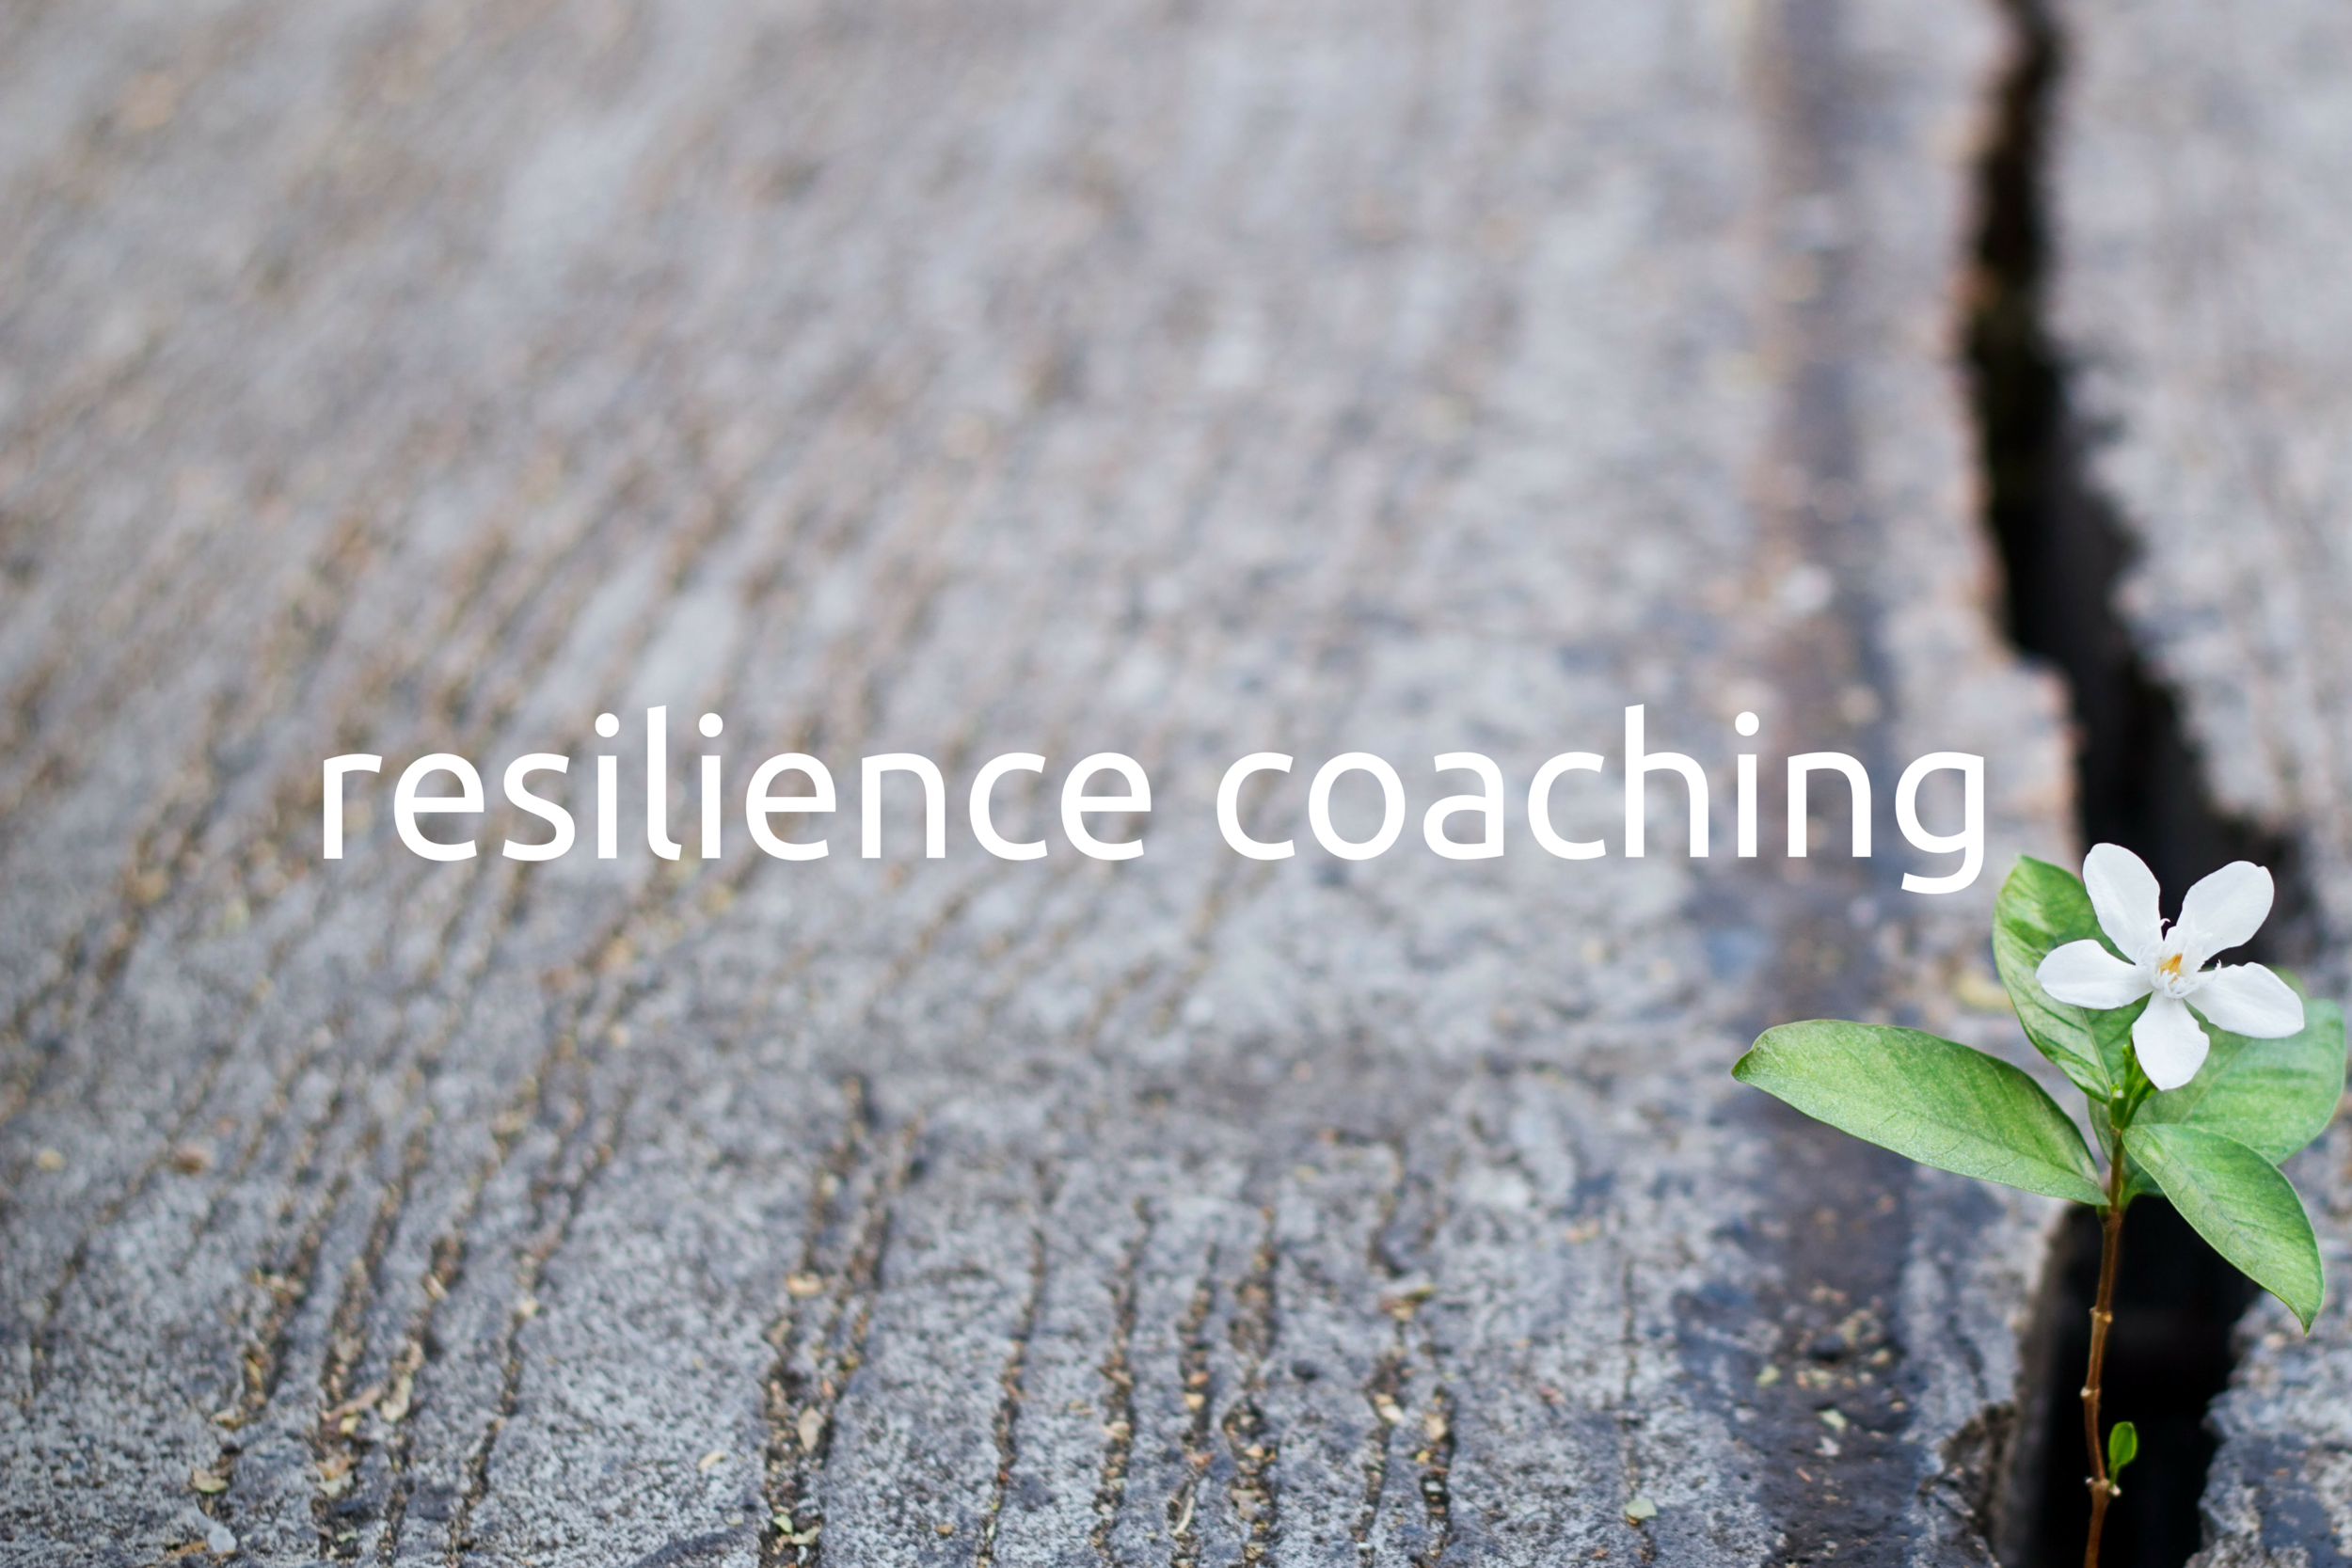 resilience coaching